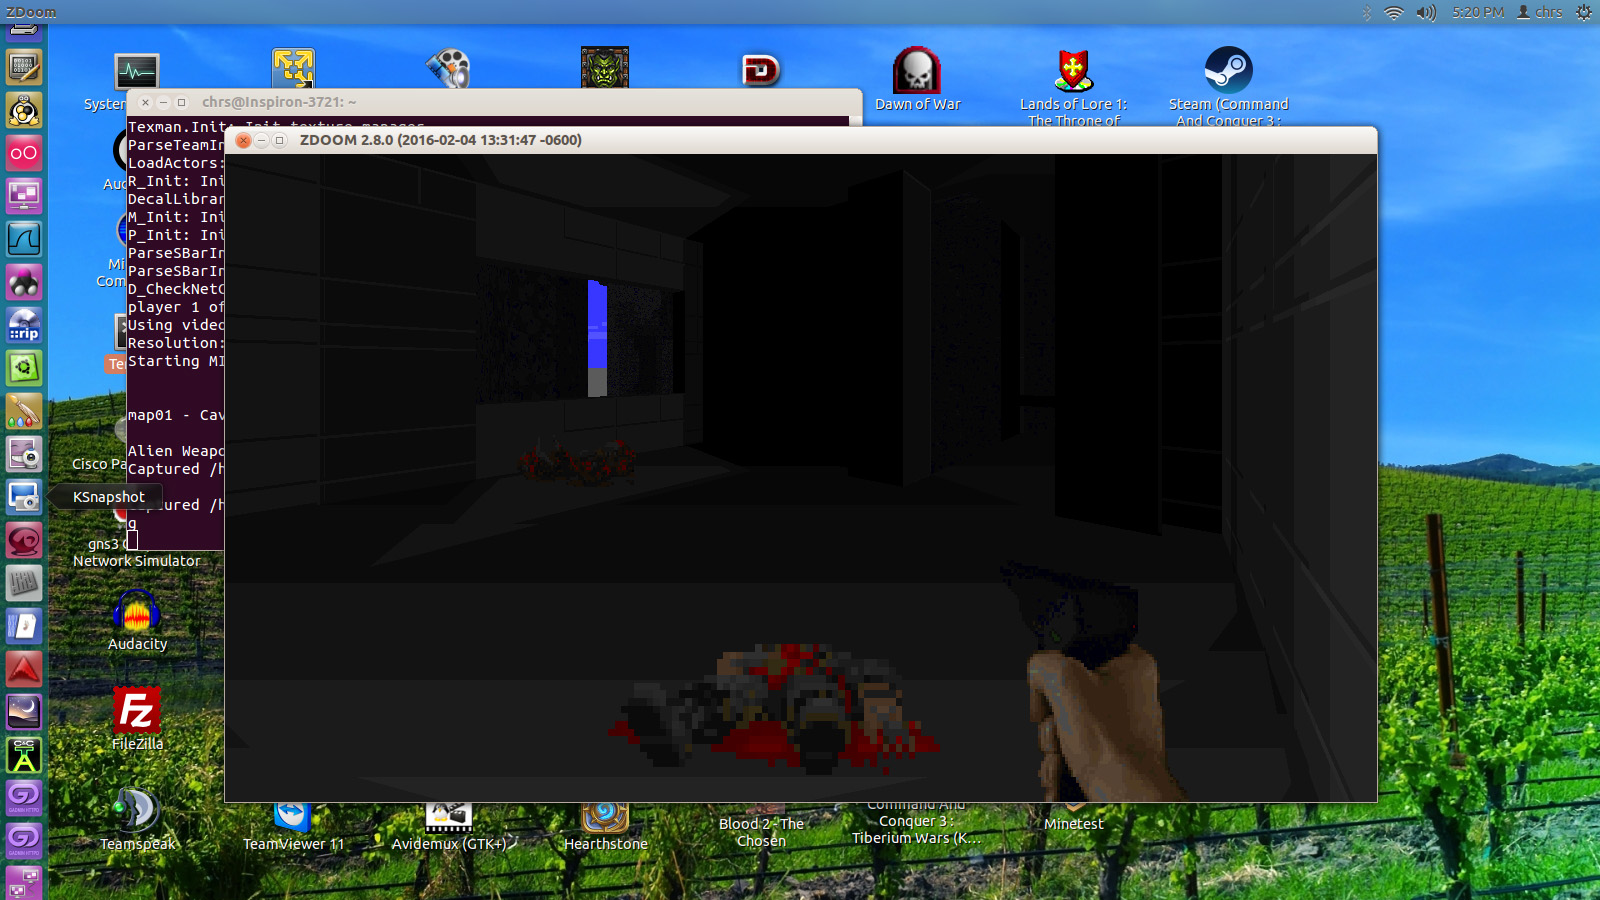 doom_another_world_linux_4.jpg